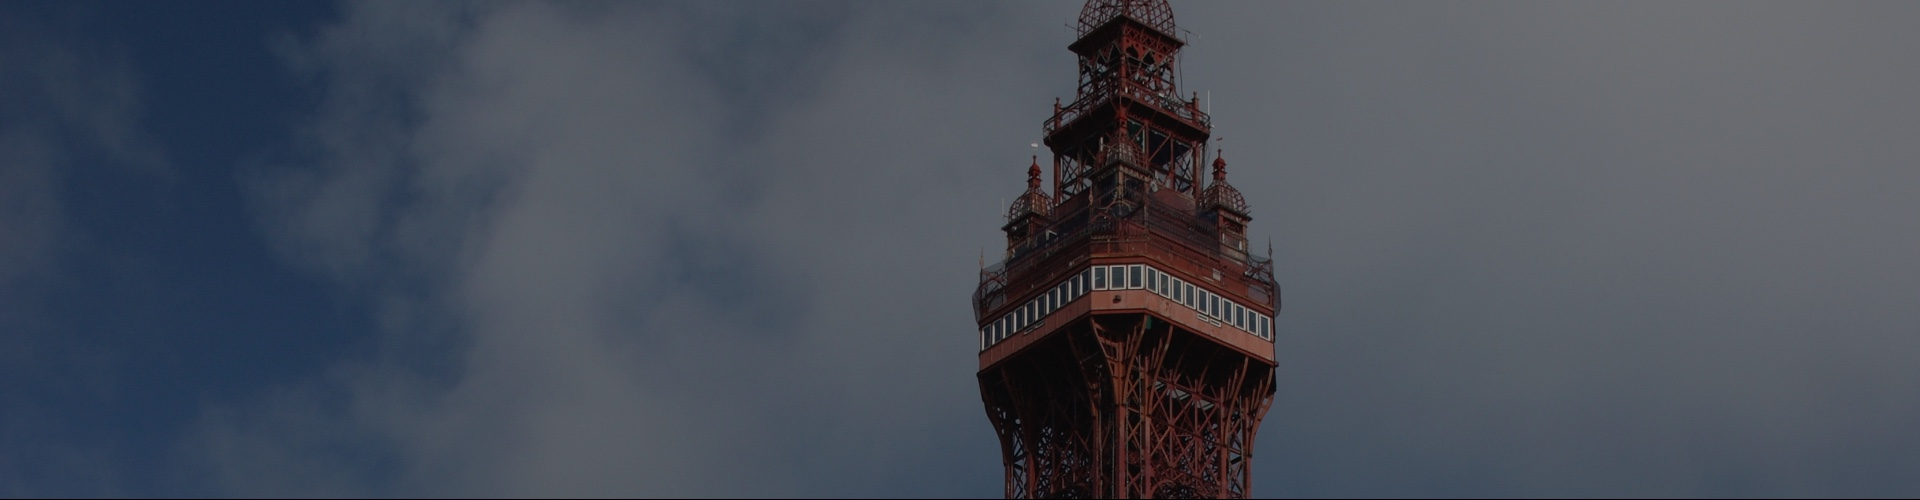 Top of the Blackpool Tower close up